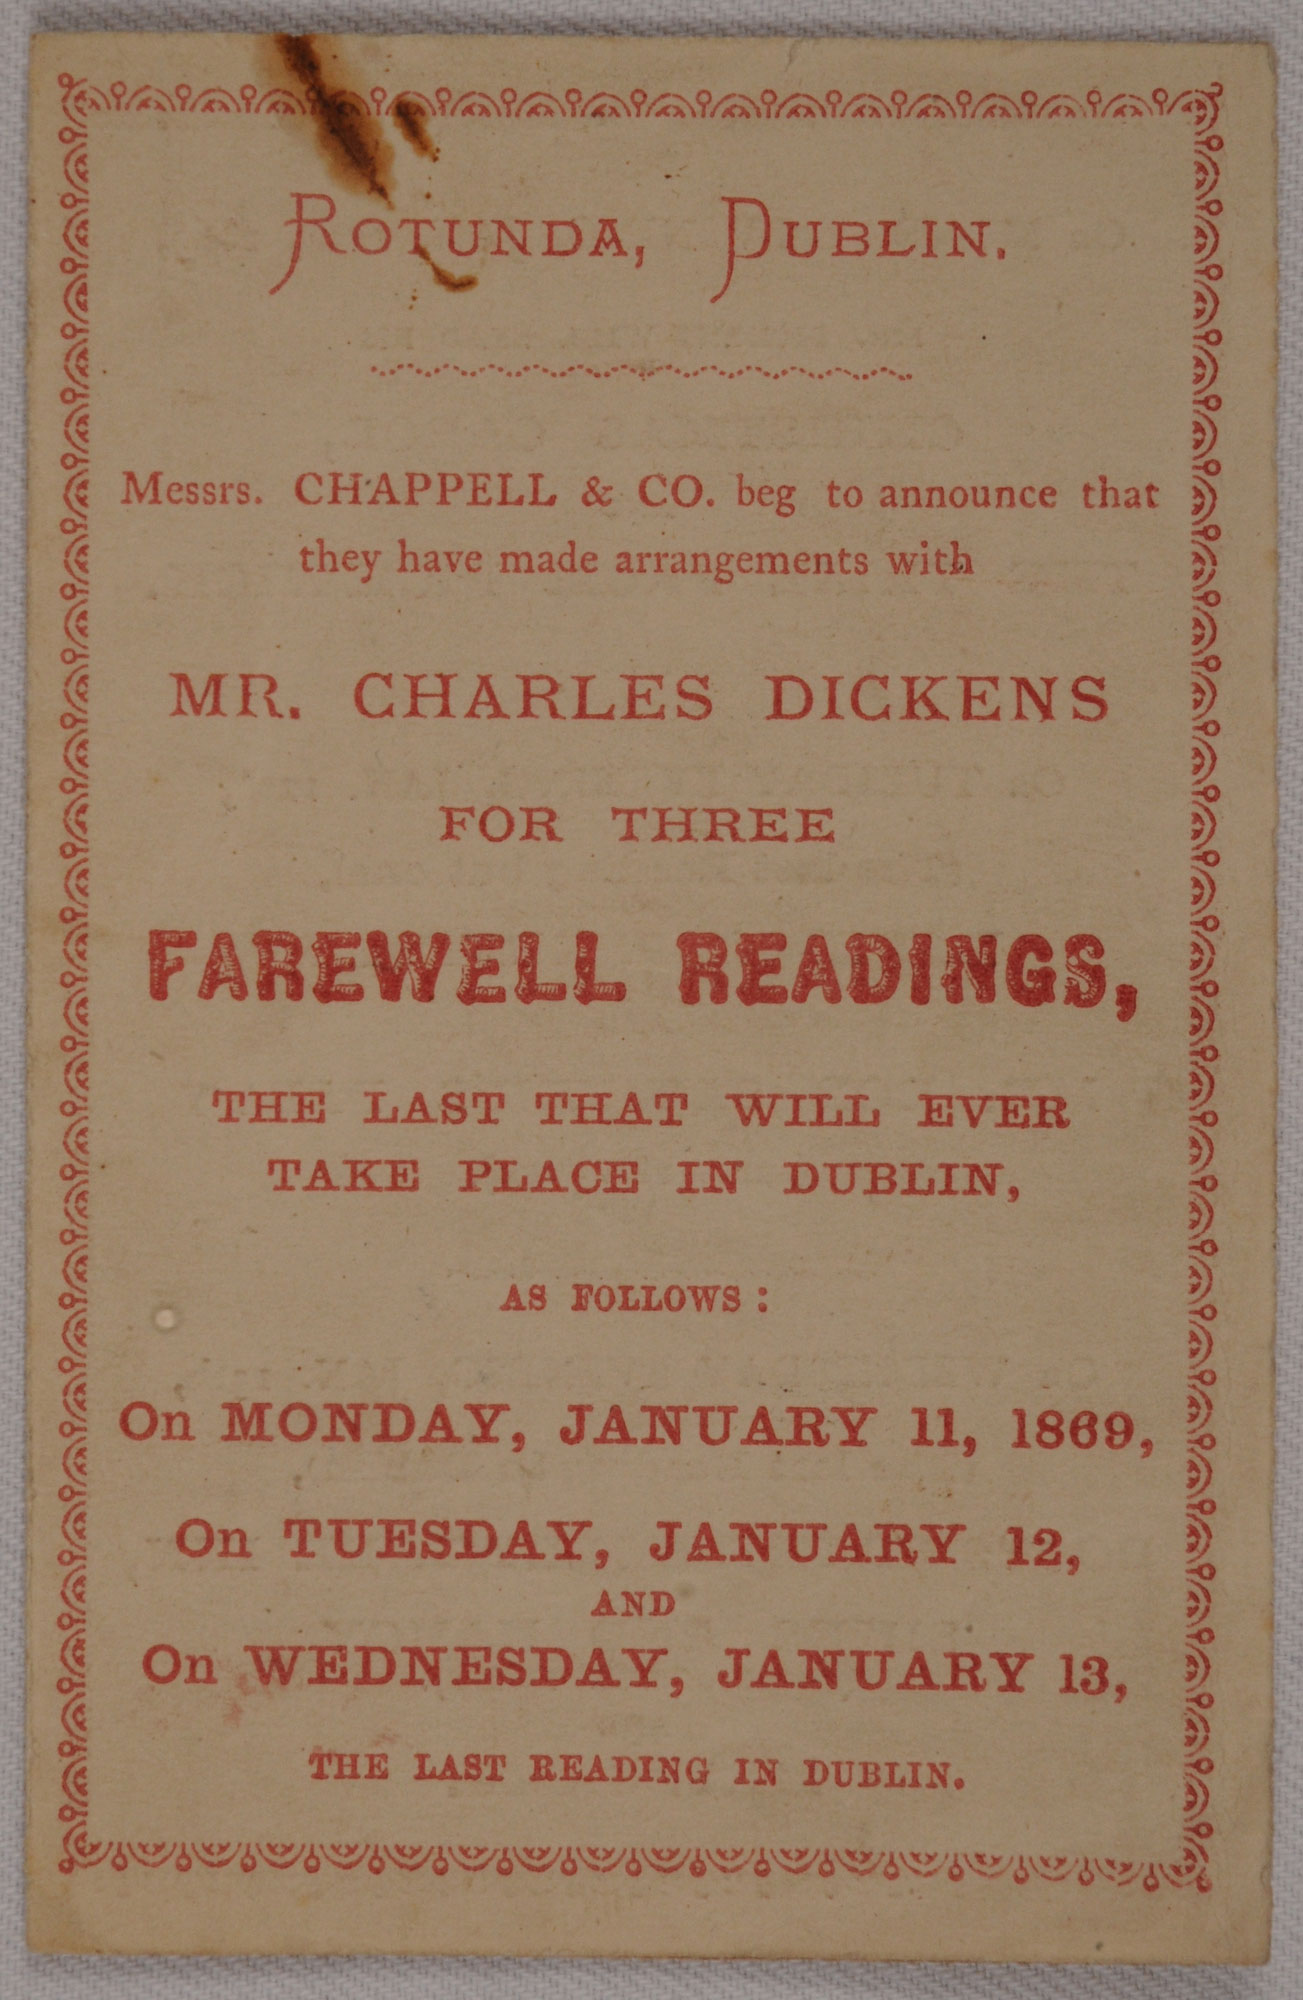 Ticket for Charles Dickens's last readings in Dublin